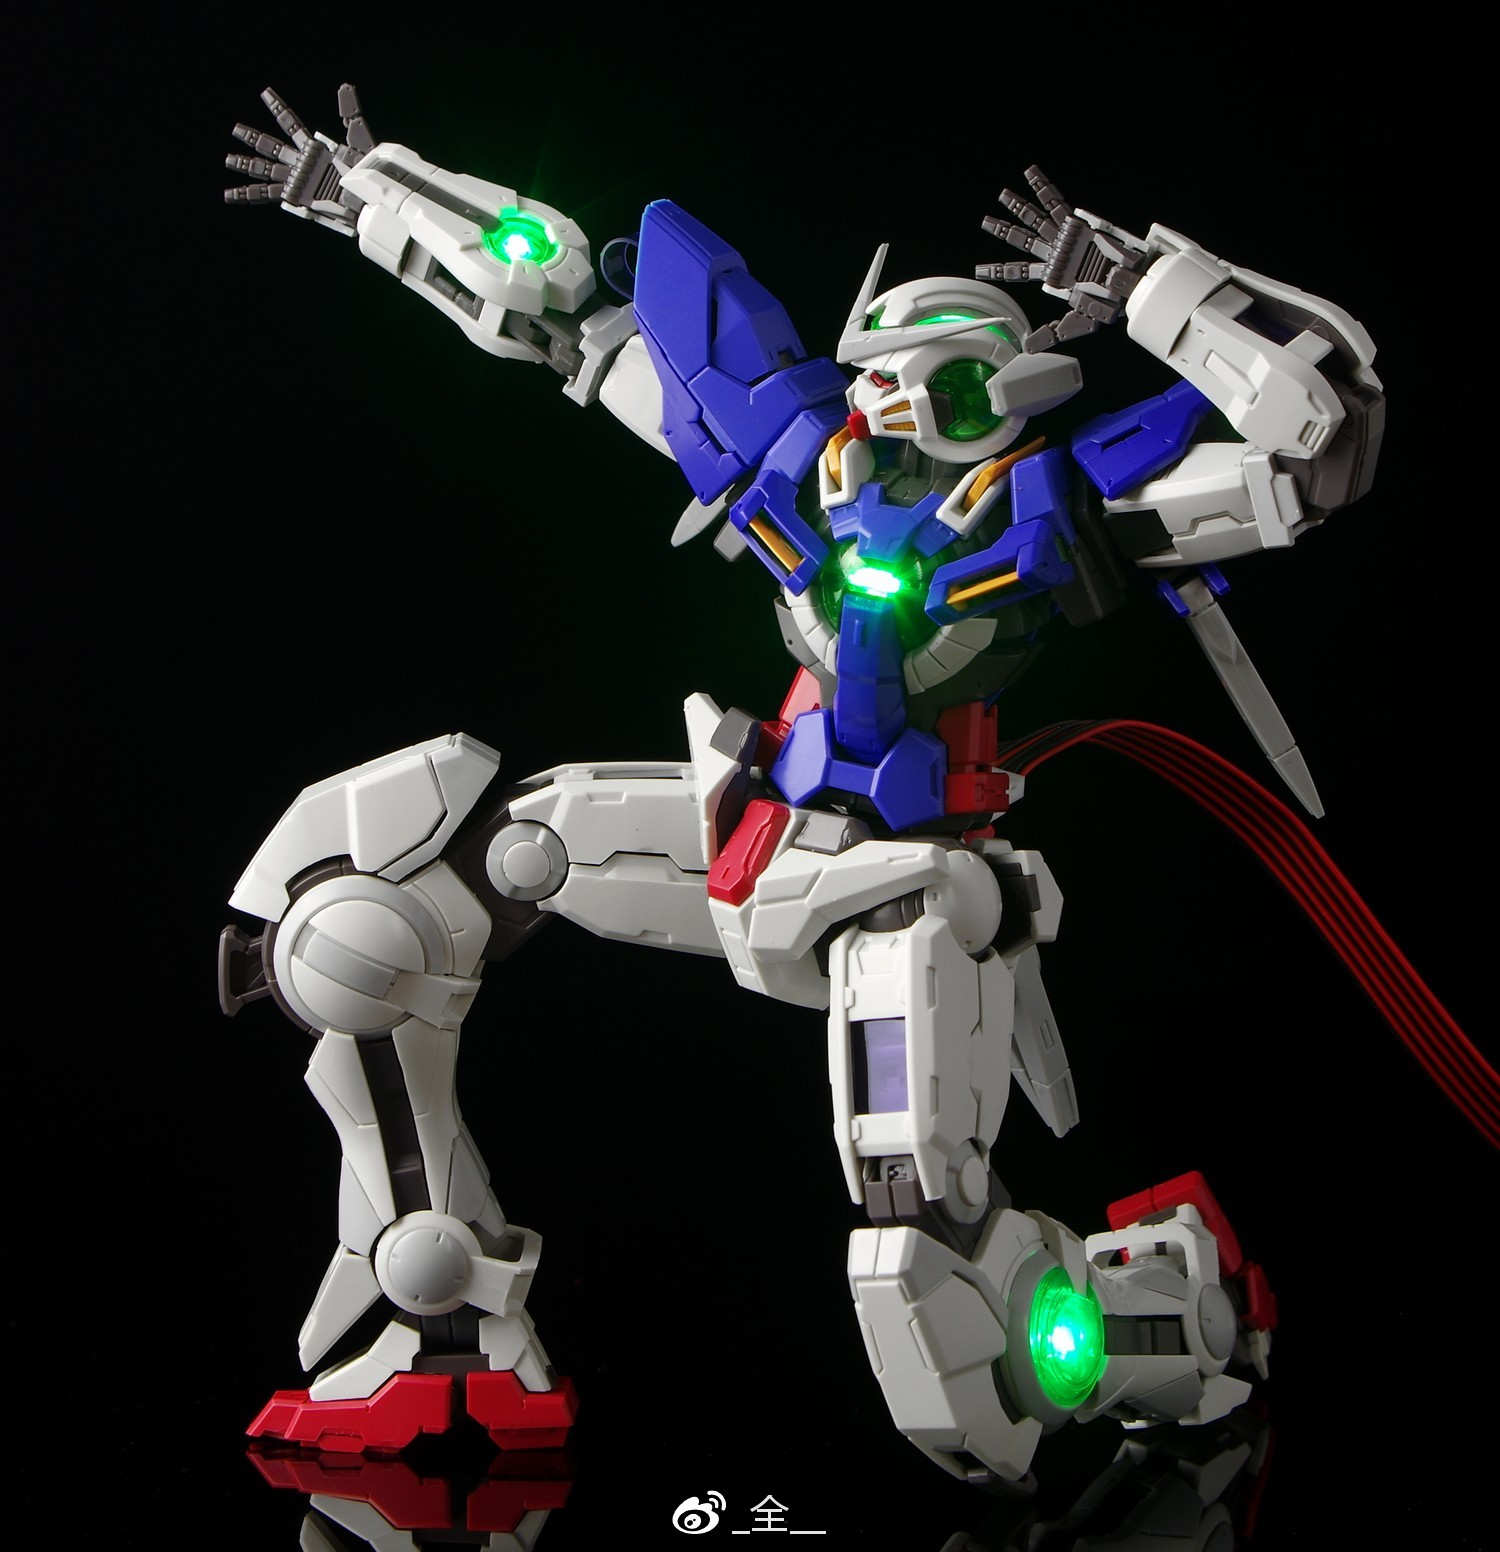 S269_mg_exia_led_hobby_star_inask_058.jpg